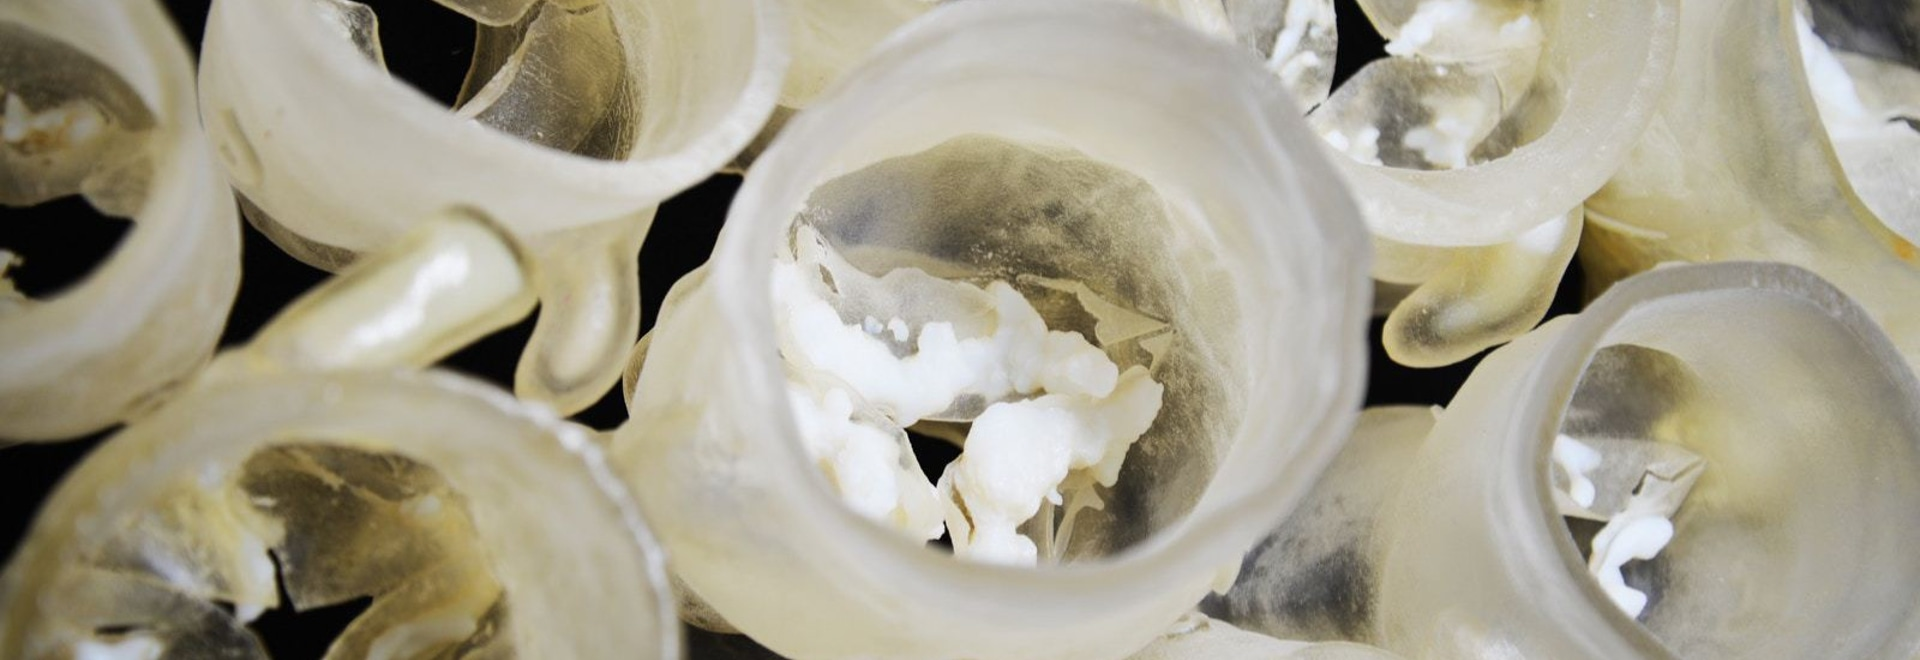 Multi-material physical models of patients' aortic heart valves, each with its own unique size, shape, and amount of calcification. Credit: Wyss Institute at Harvard University